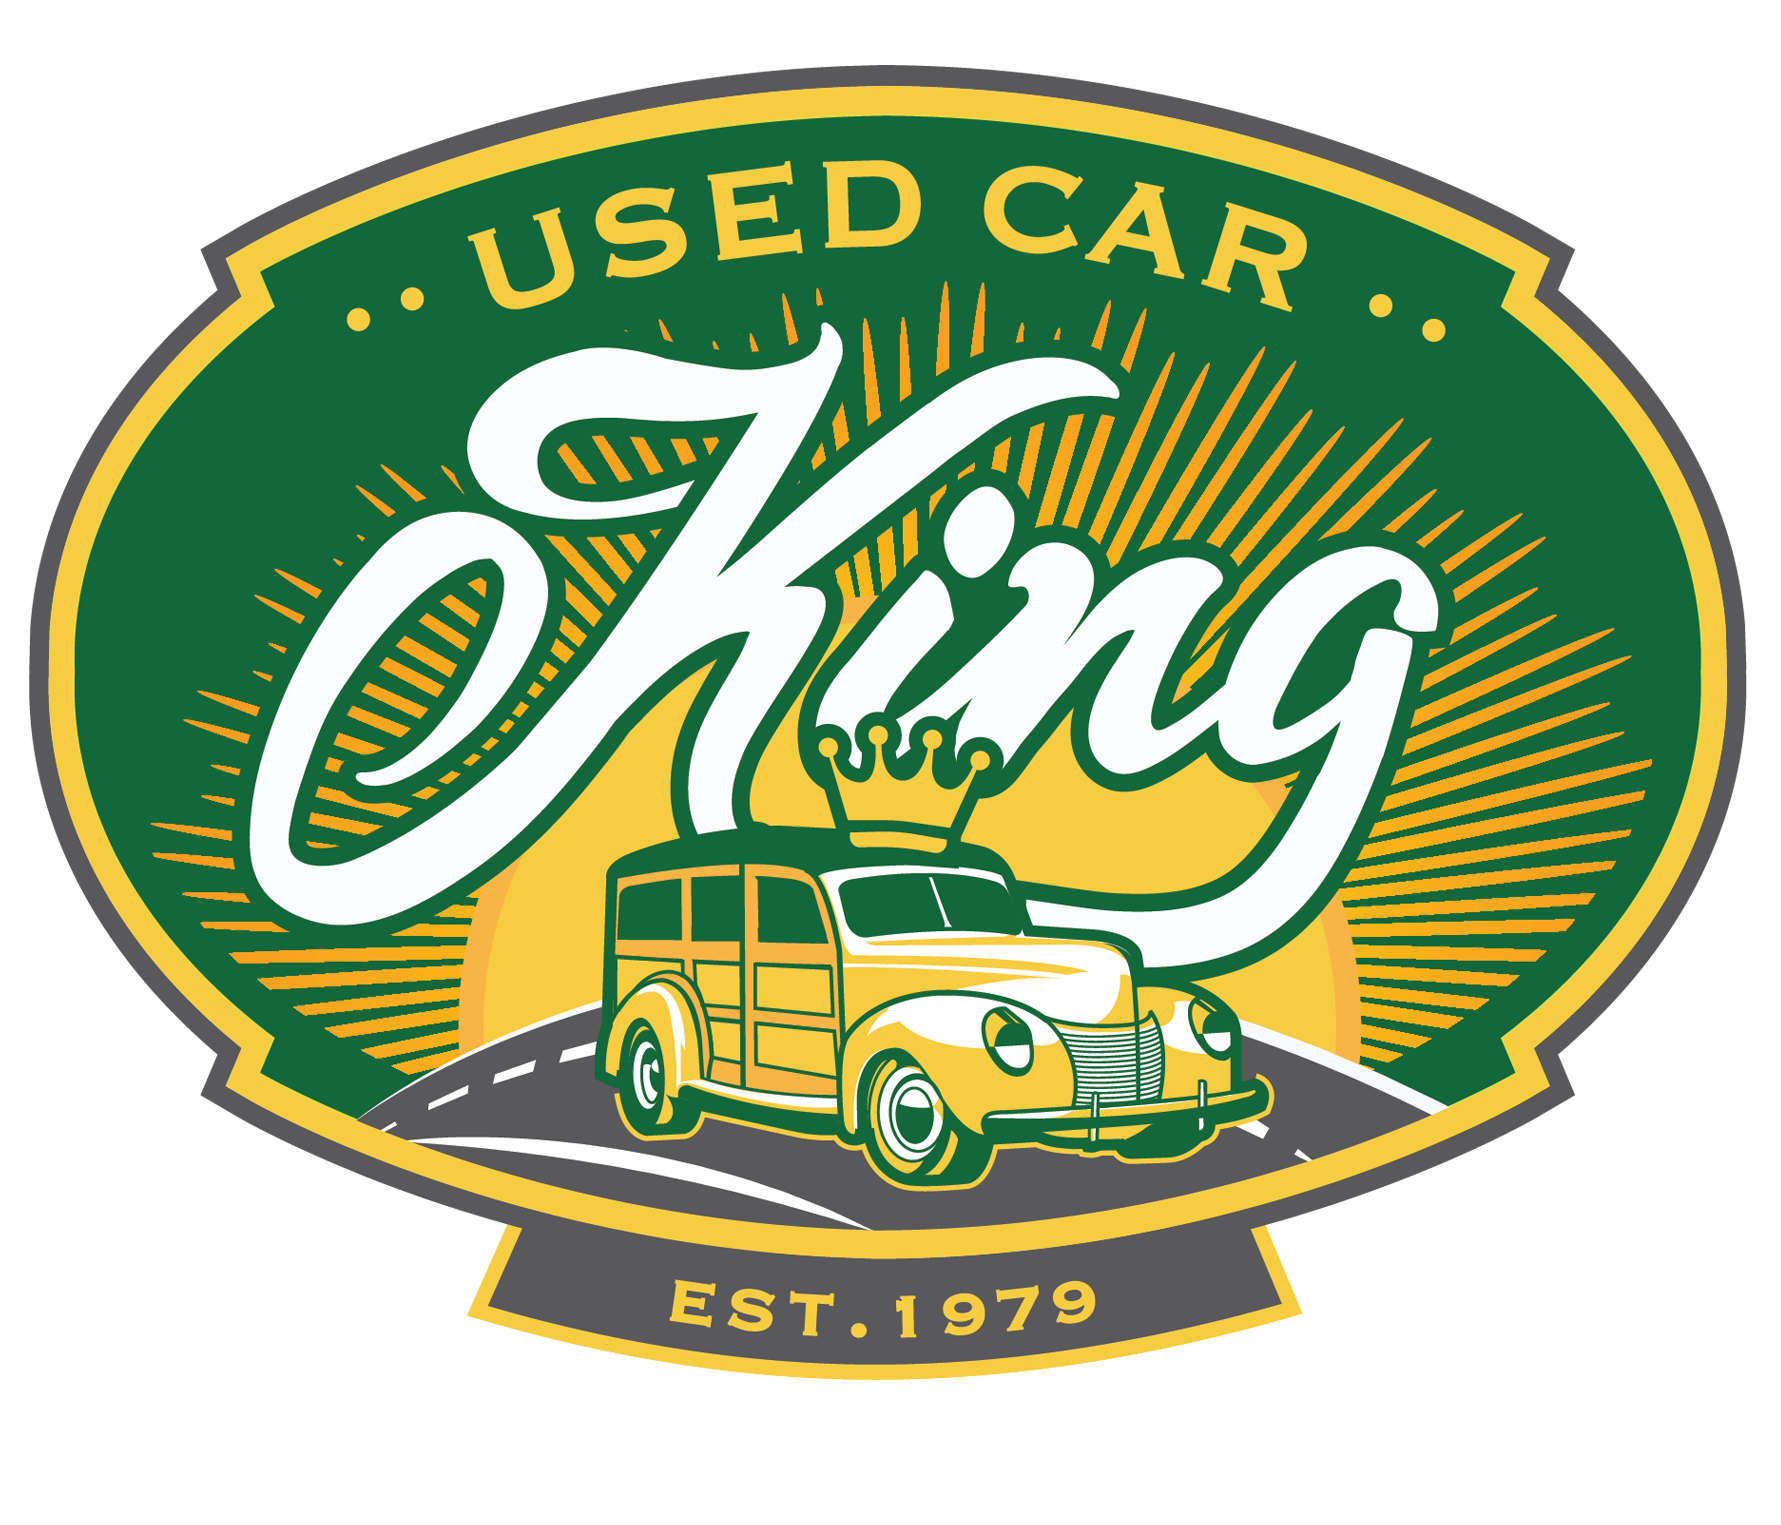 used car king of cicero